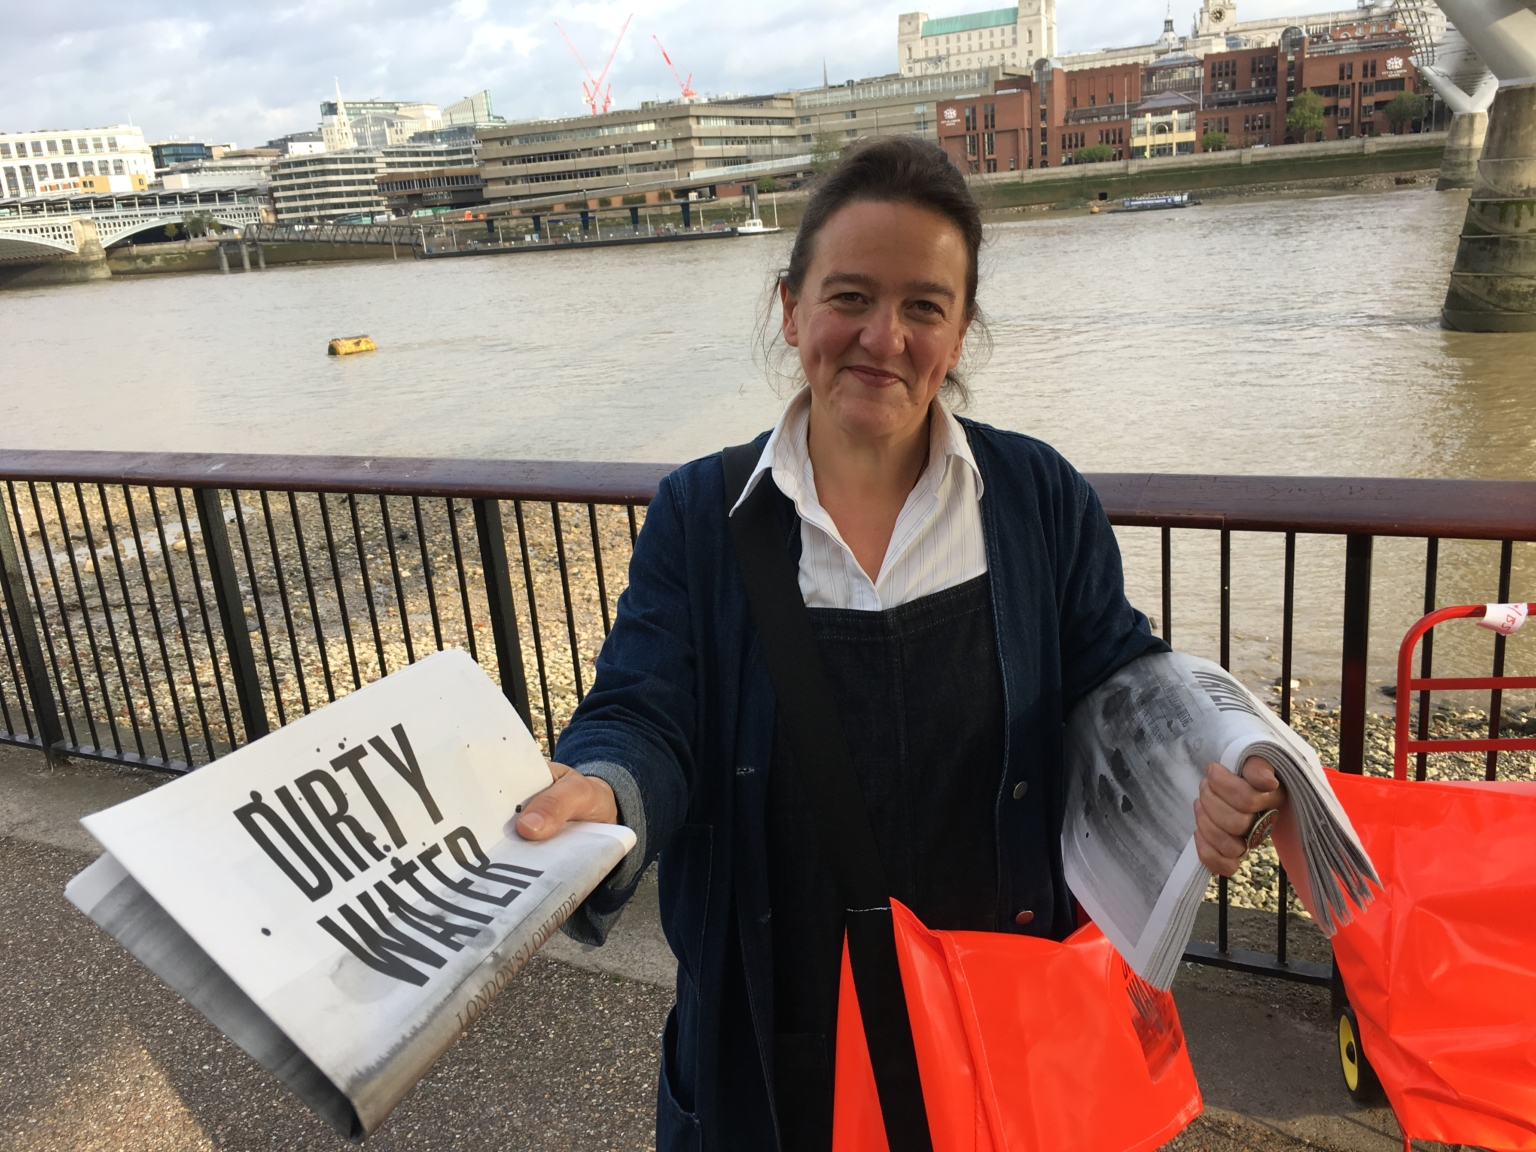 Tania Kovats hands out copies of her work Dirty Water